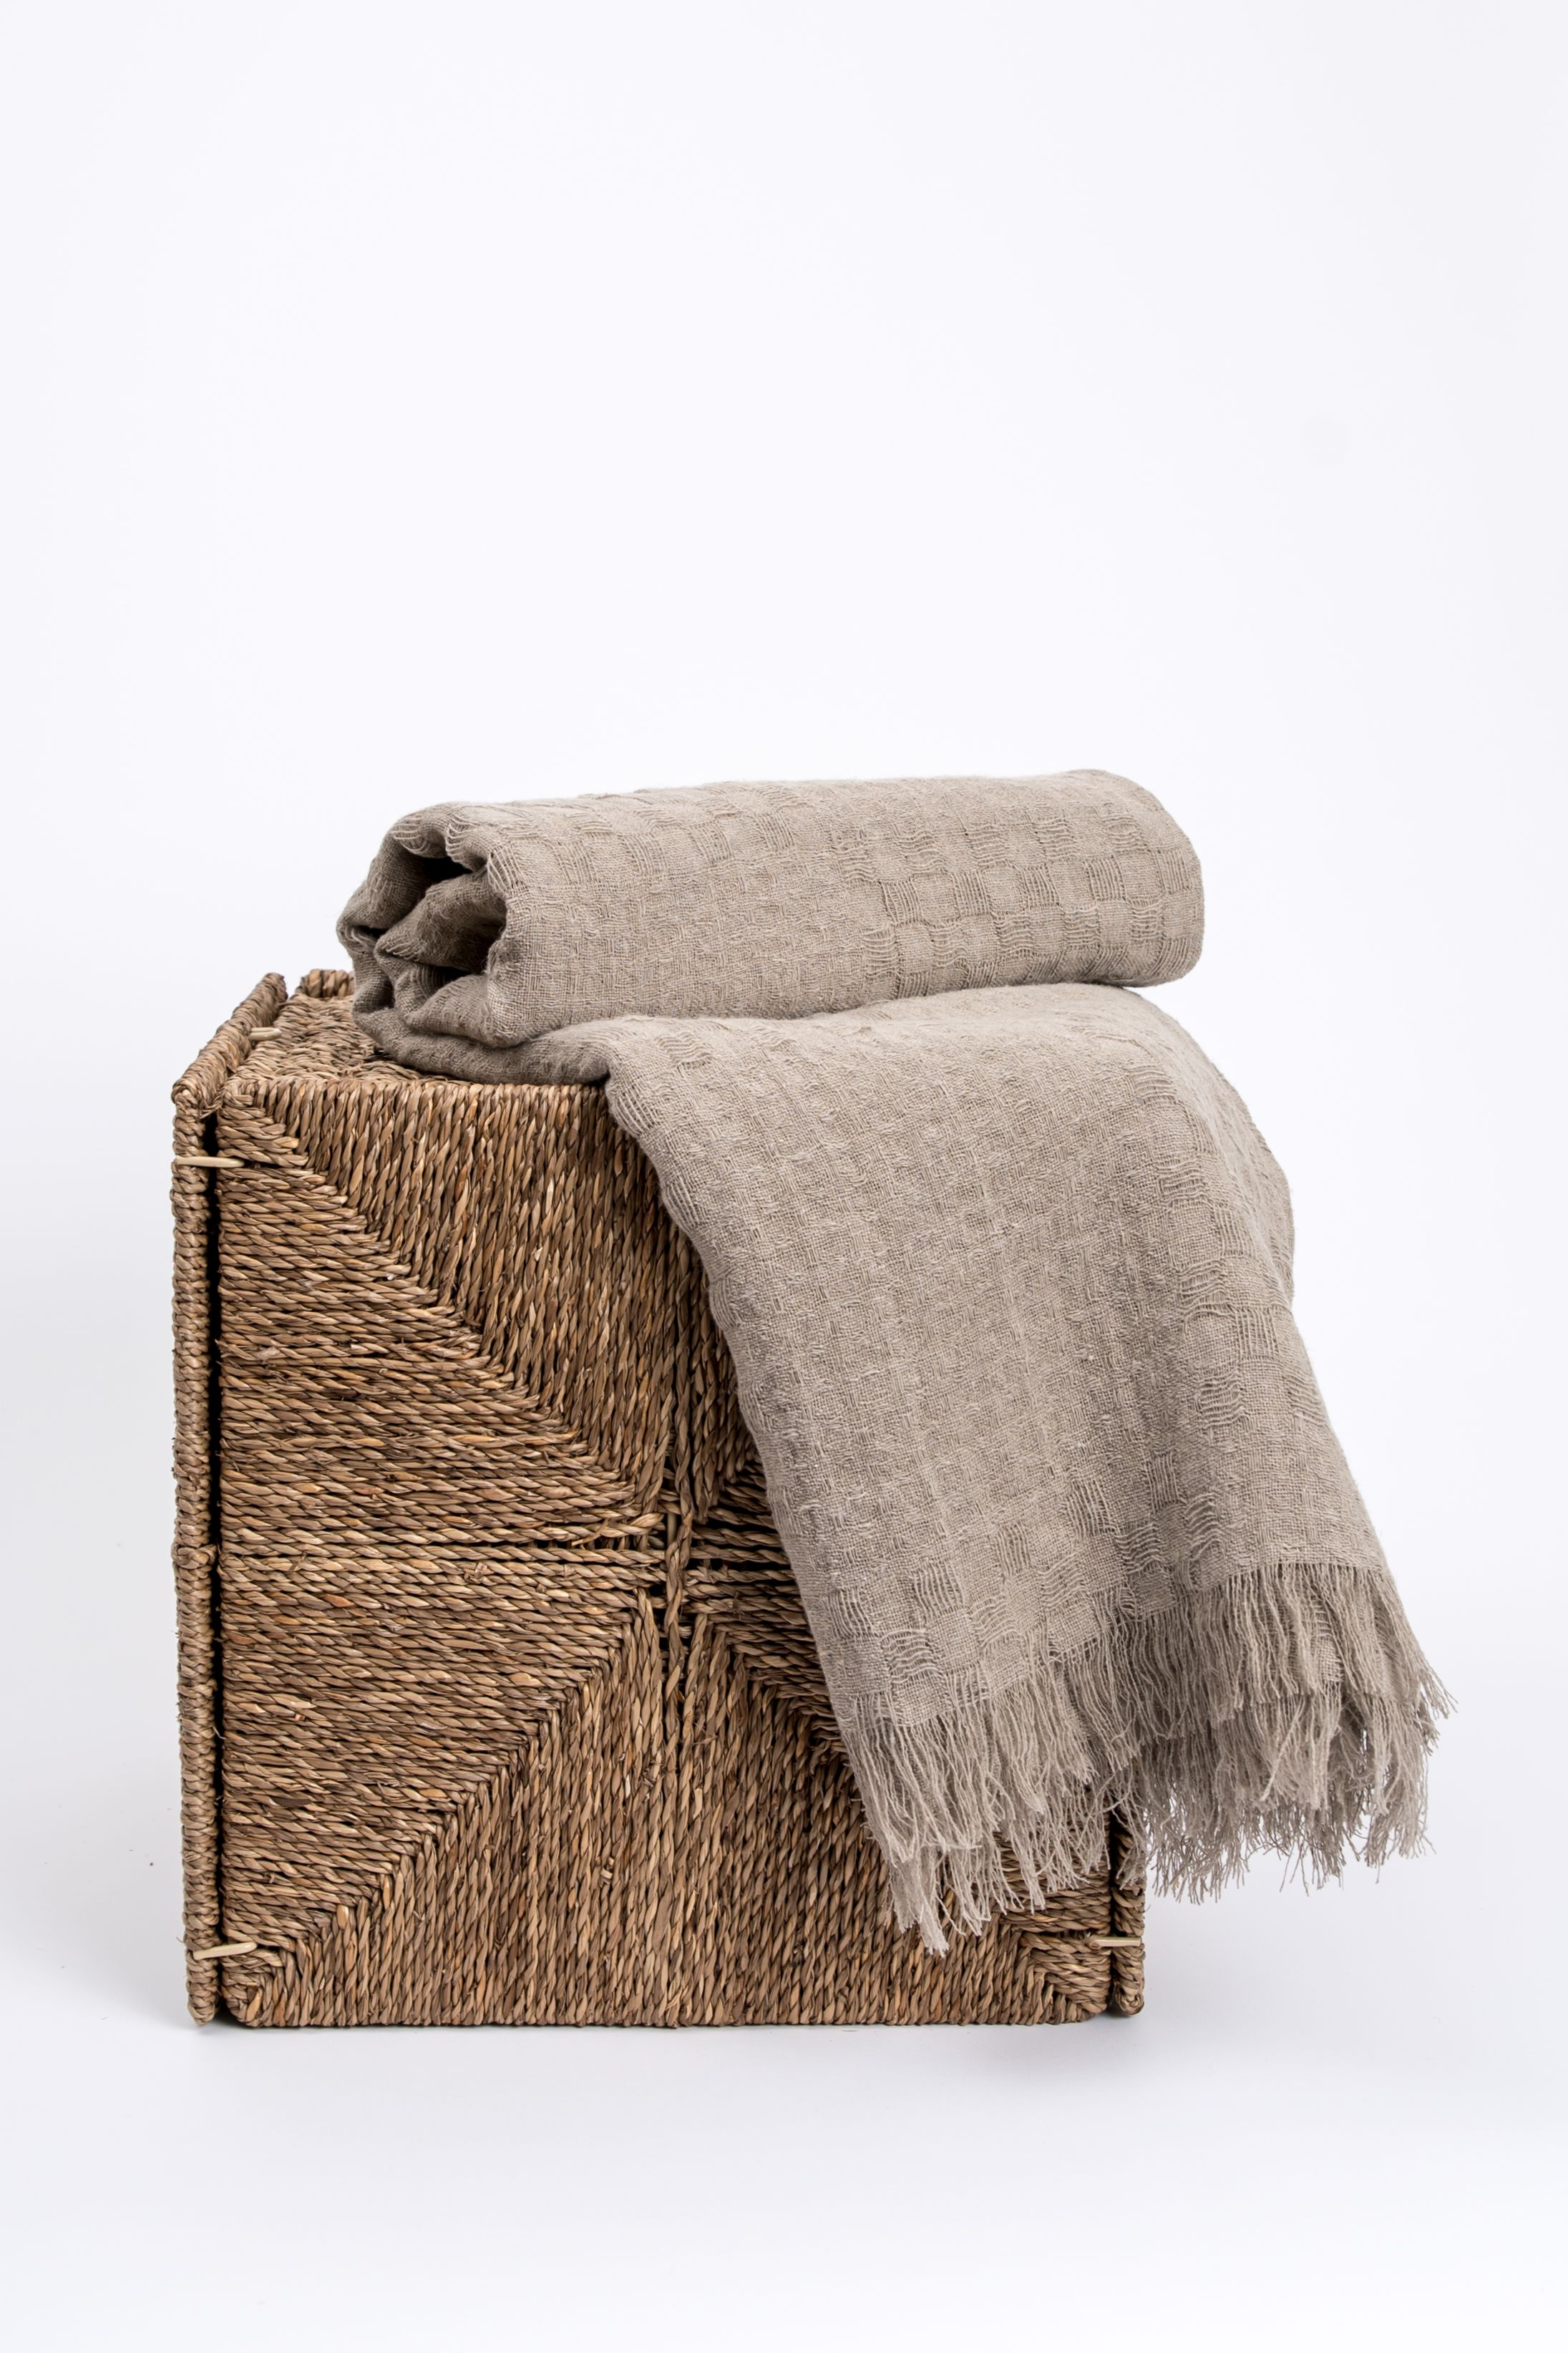 Linen Throw Blanket With Fringe Linen Bed Throw 100 Stone Washed Linen Fabric Natural Or Mustard Yellow Linen Linen Bed Throws Throw Blanket Linen Throw